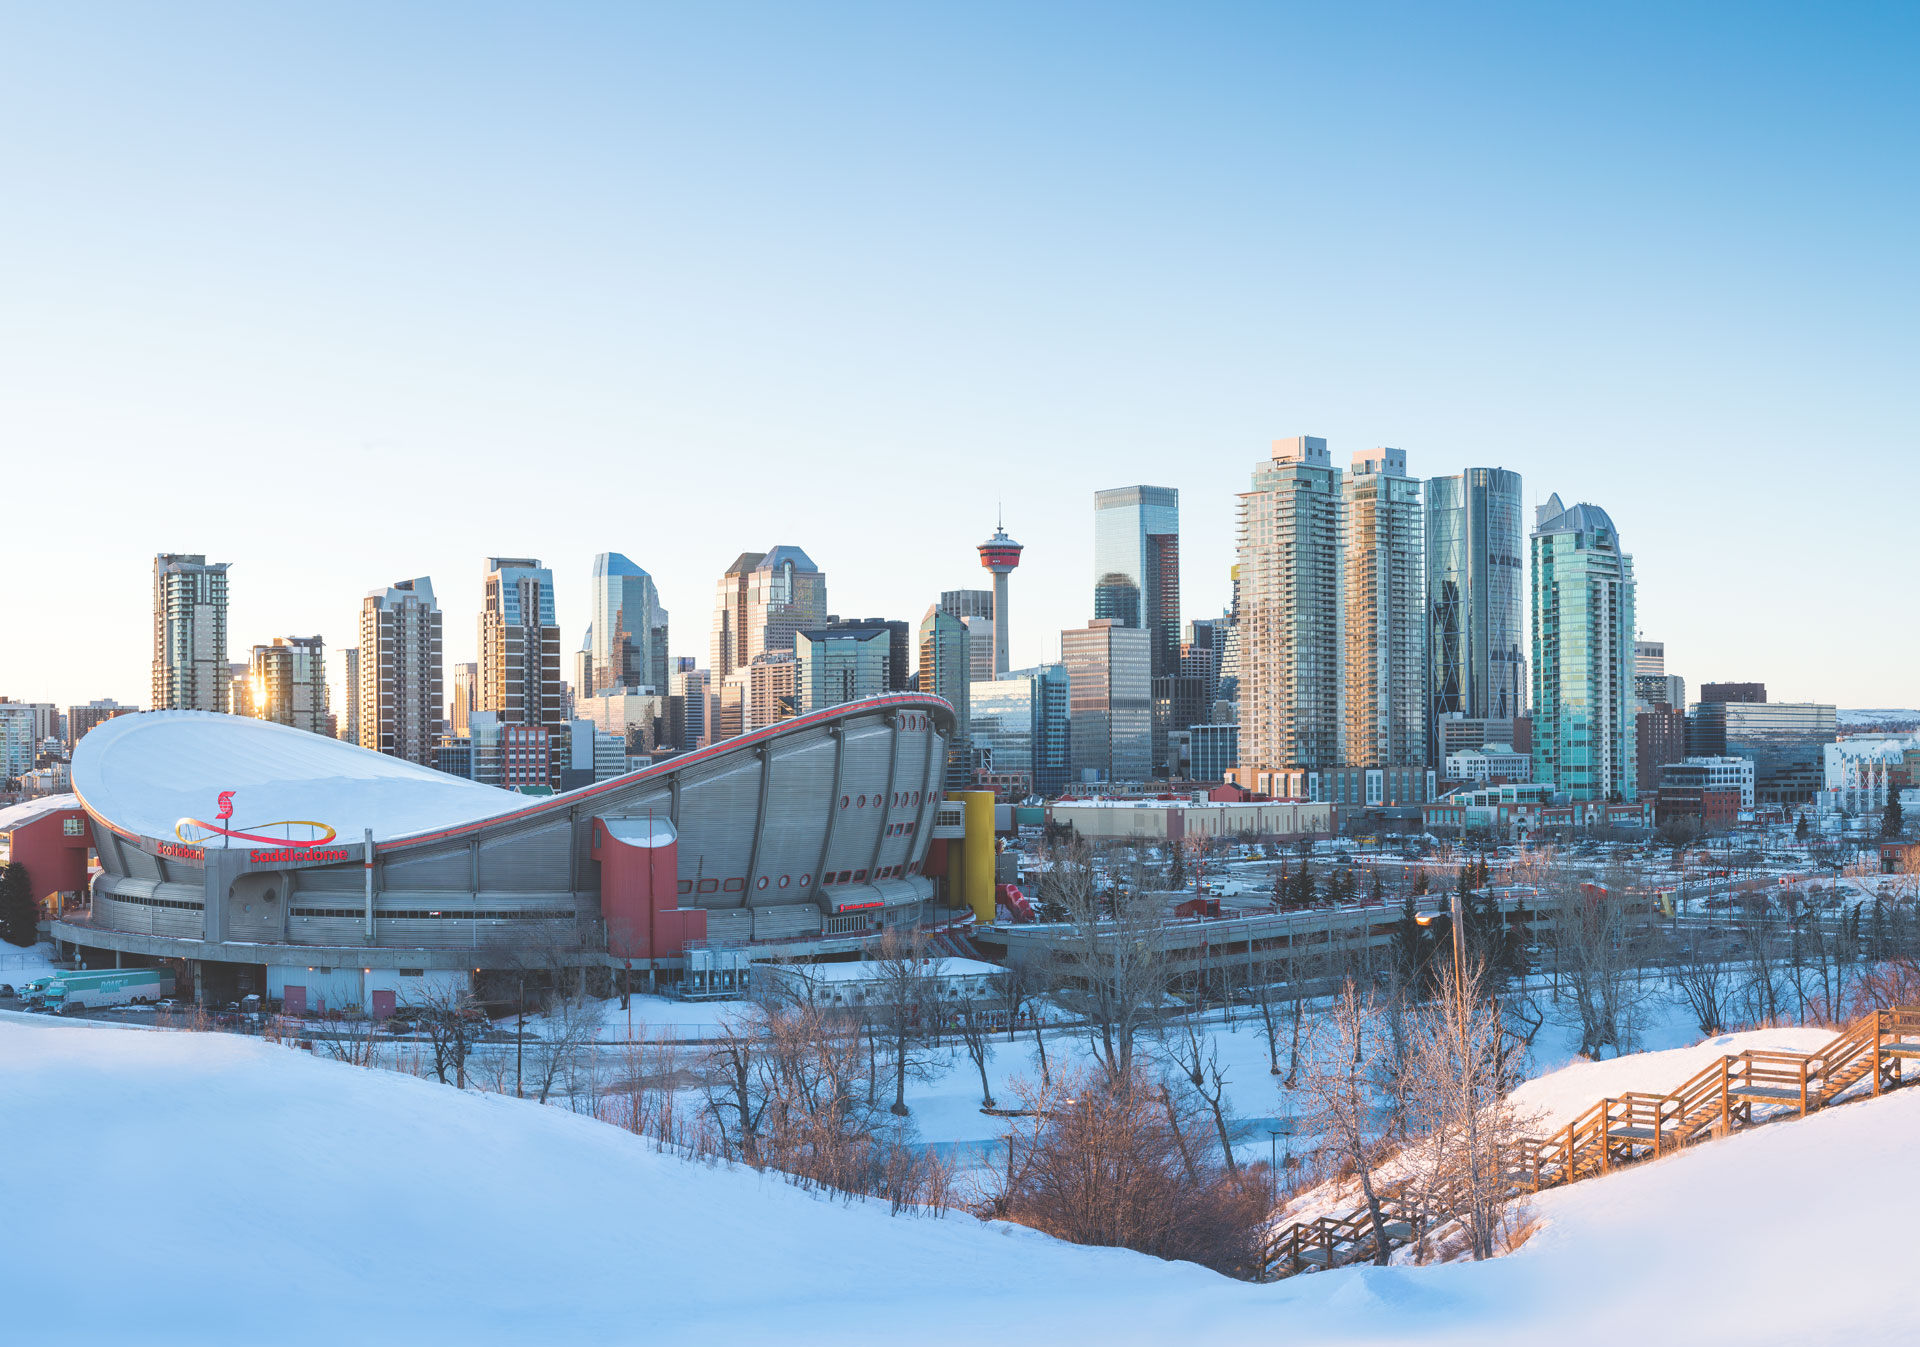 A winter day in Calgary